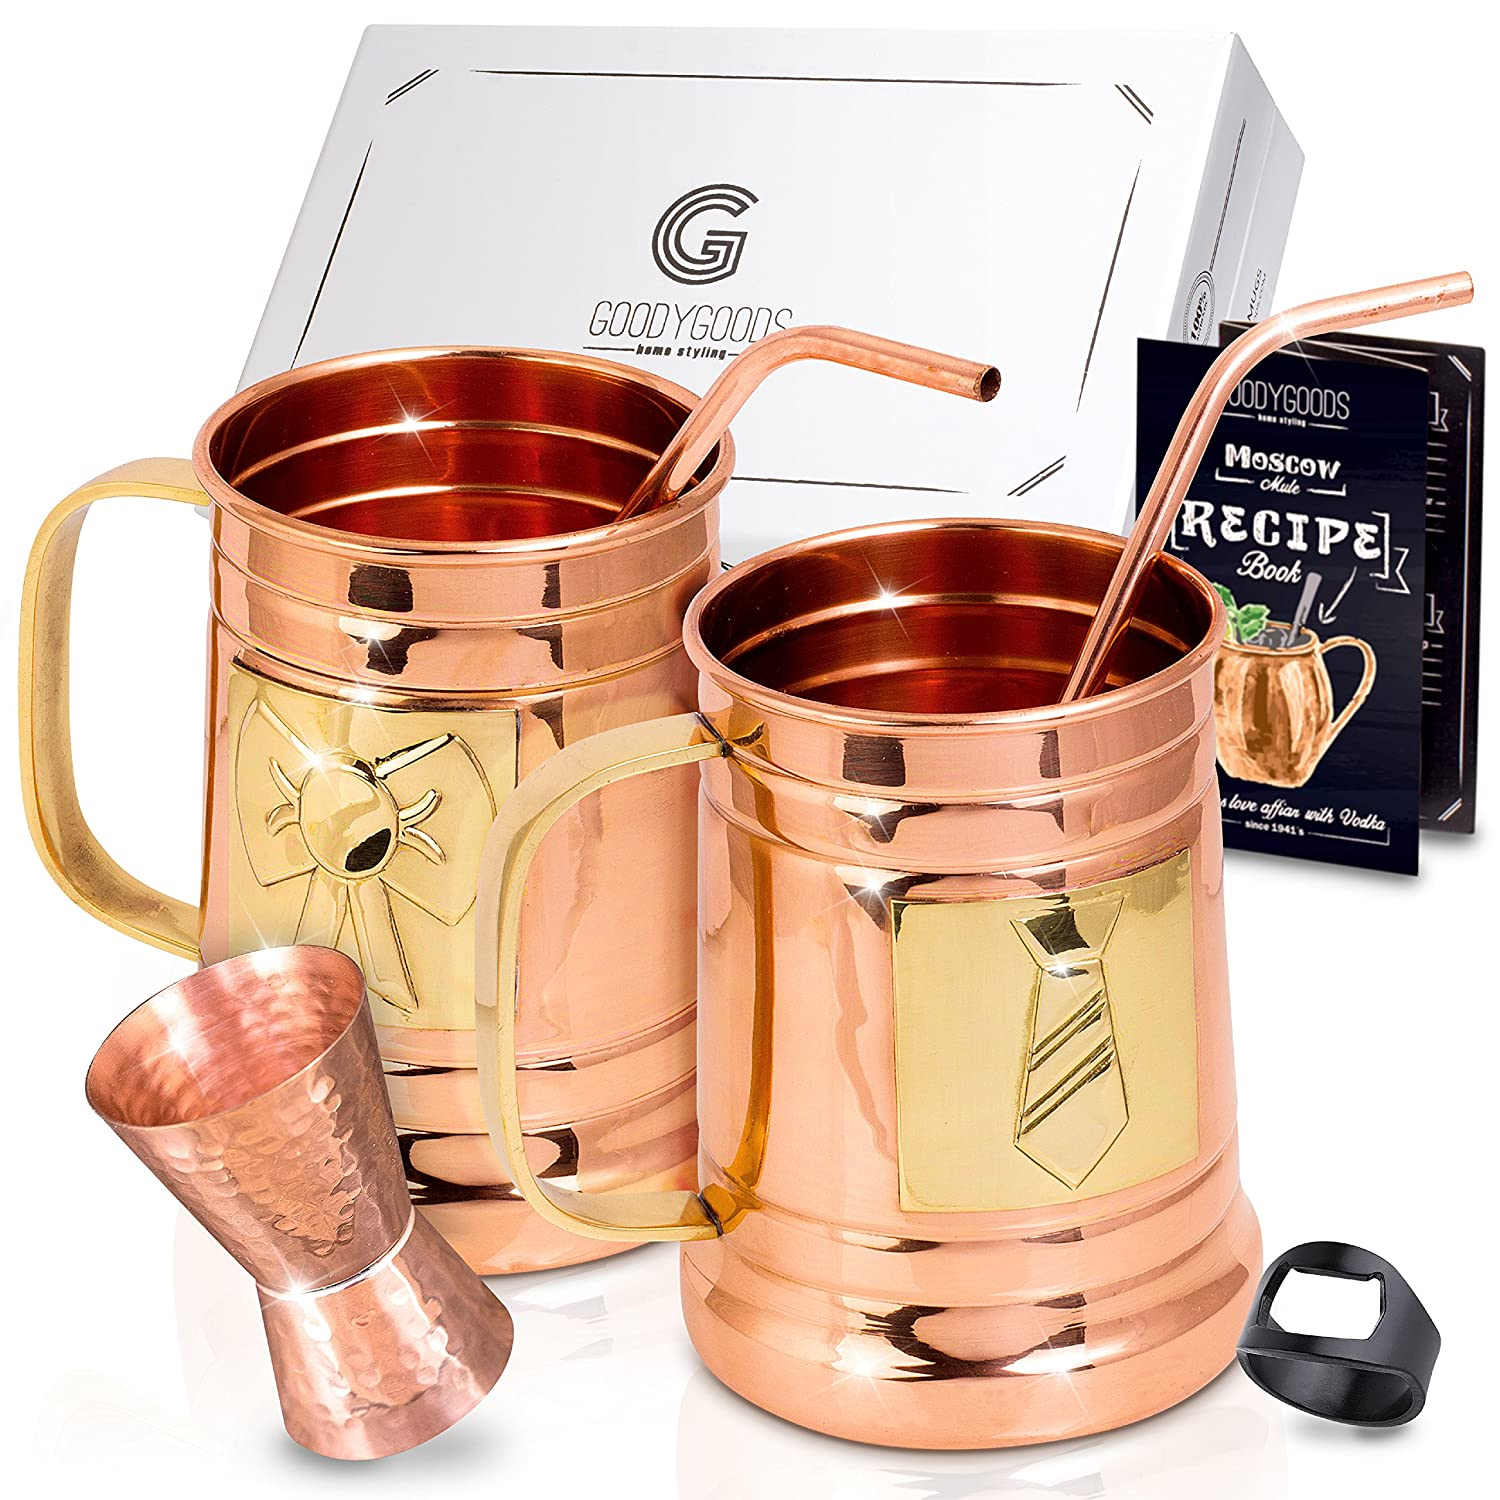 Magnificent Moscow Mule Copper Mugs: Make Any Drink Taste Much Better! 100% Pure Solid Copper His & Hers Gift Set- 2 Hammered 16 OZ Copper Caps 2 Unique Straws, Jigger & Recipe Book! (copper, 16oz) GoodyGoods-home styling SYNCHKG119421